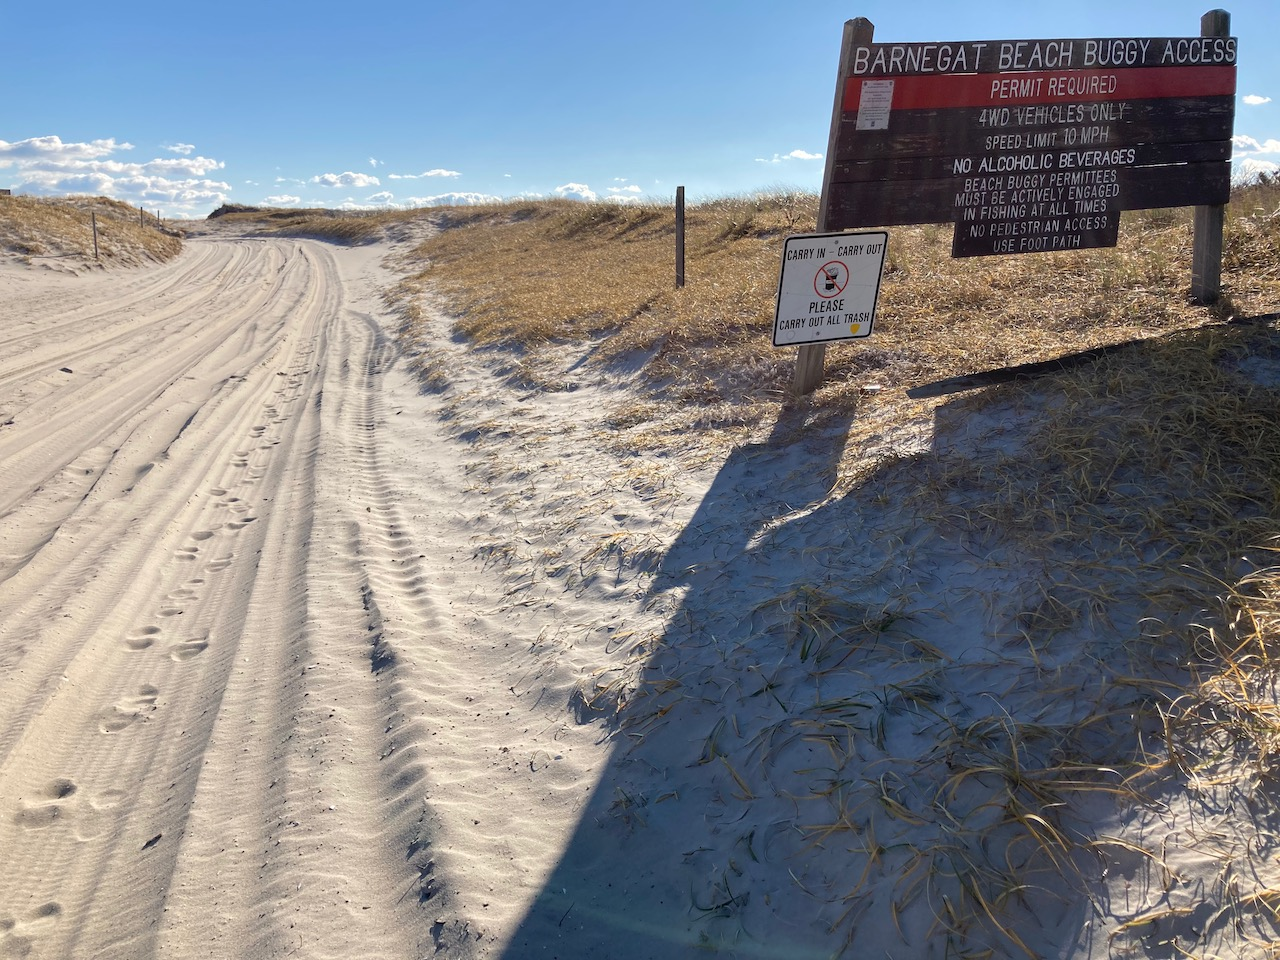 Sand road, with sign beside road that says BARNEGAT BEACH BUGGY ACCESS PERMIT REQUIRED 4WD VEHICLES ONLY SPEED LIMIT 10 MPH.